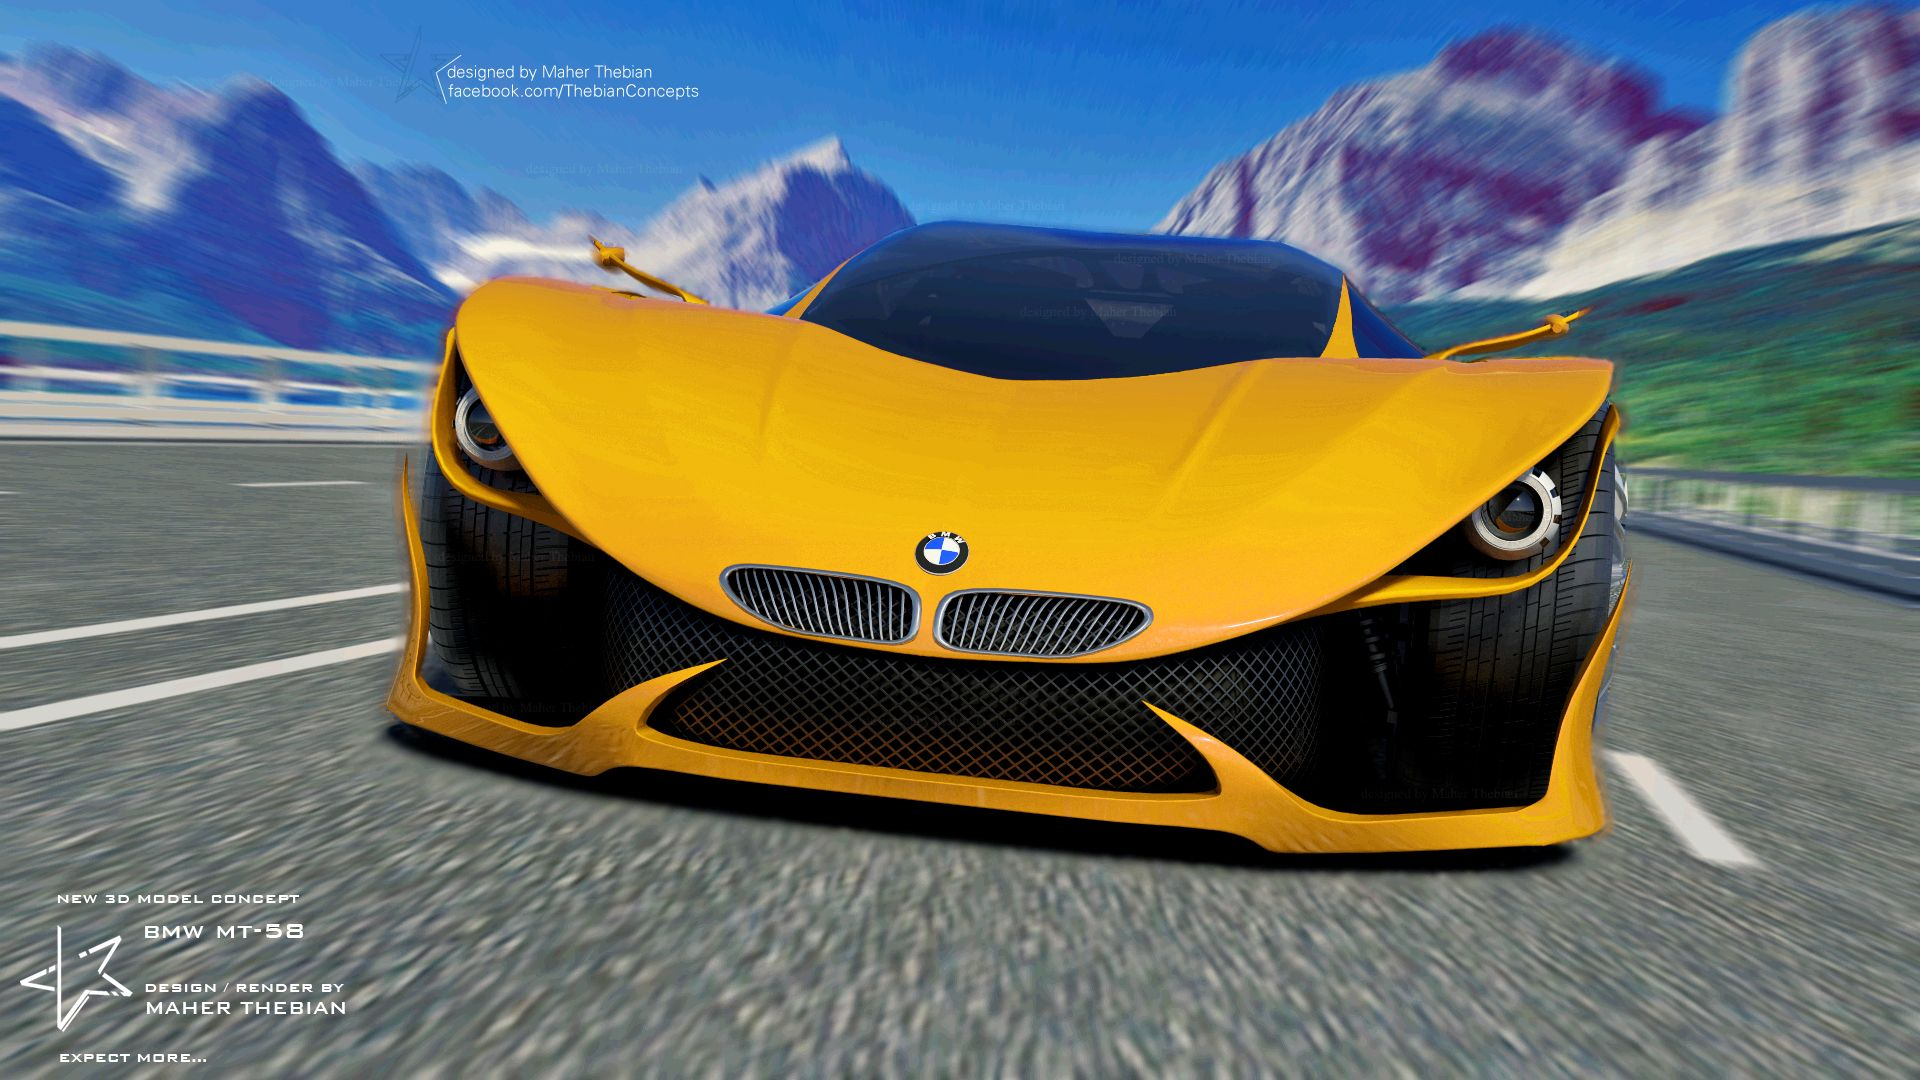 My New 3d Max Concept Car Design For Bmw Future Super Sports Car Competing With Best Super Cars On The Market The Propo Concept Cars Bmw Concept Car Sonic Car